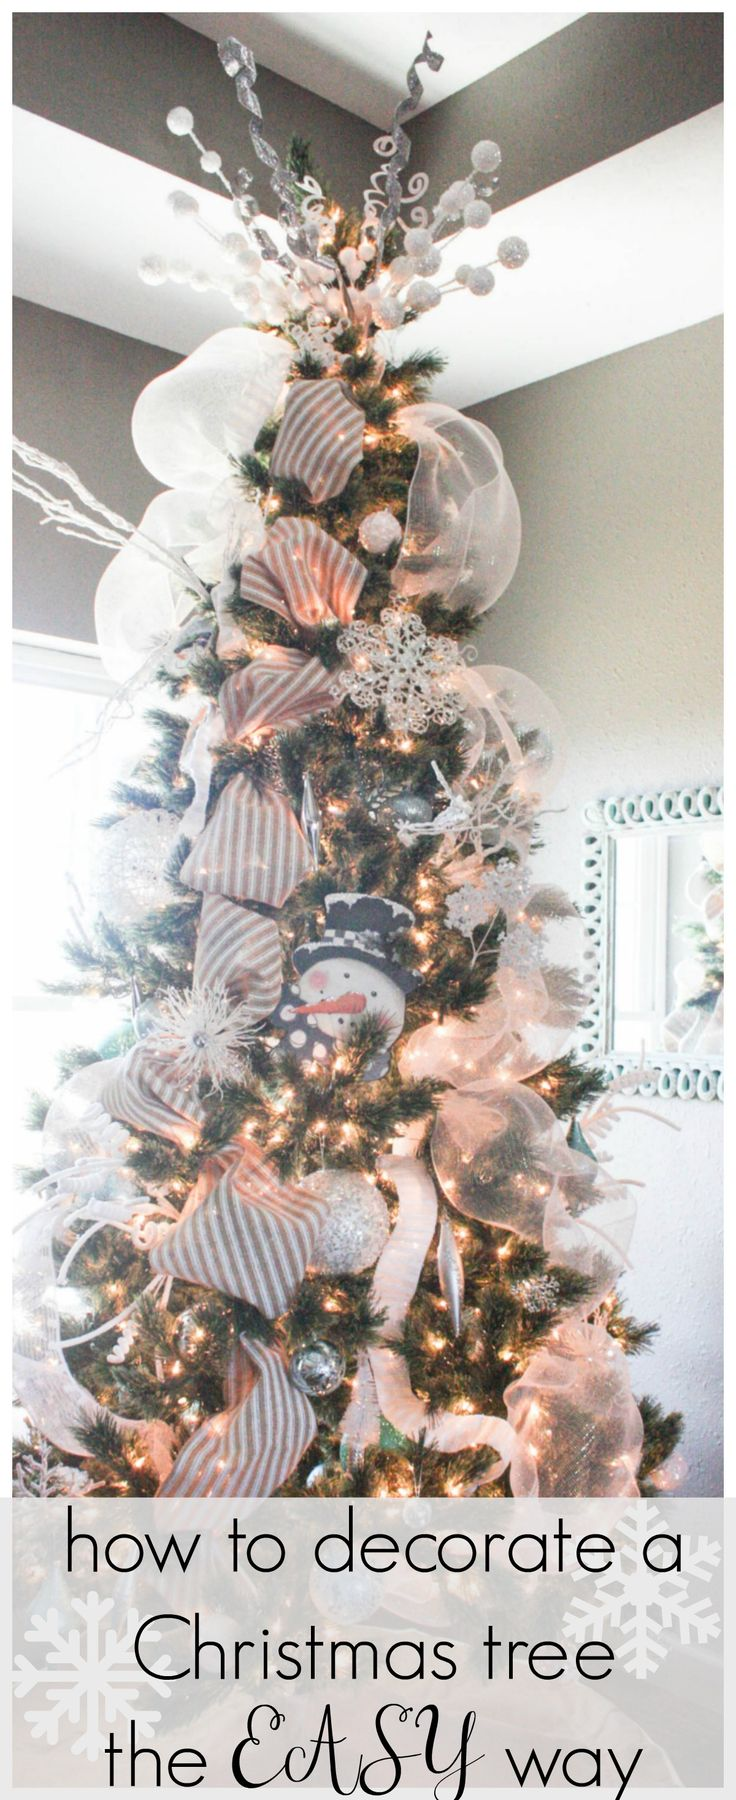 Mejores 95419 imgenes de hometalk diy christmas en pinterest how to decorate a christmas tree from start to finish the easy way solutioingenieria Images